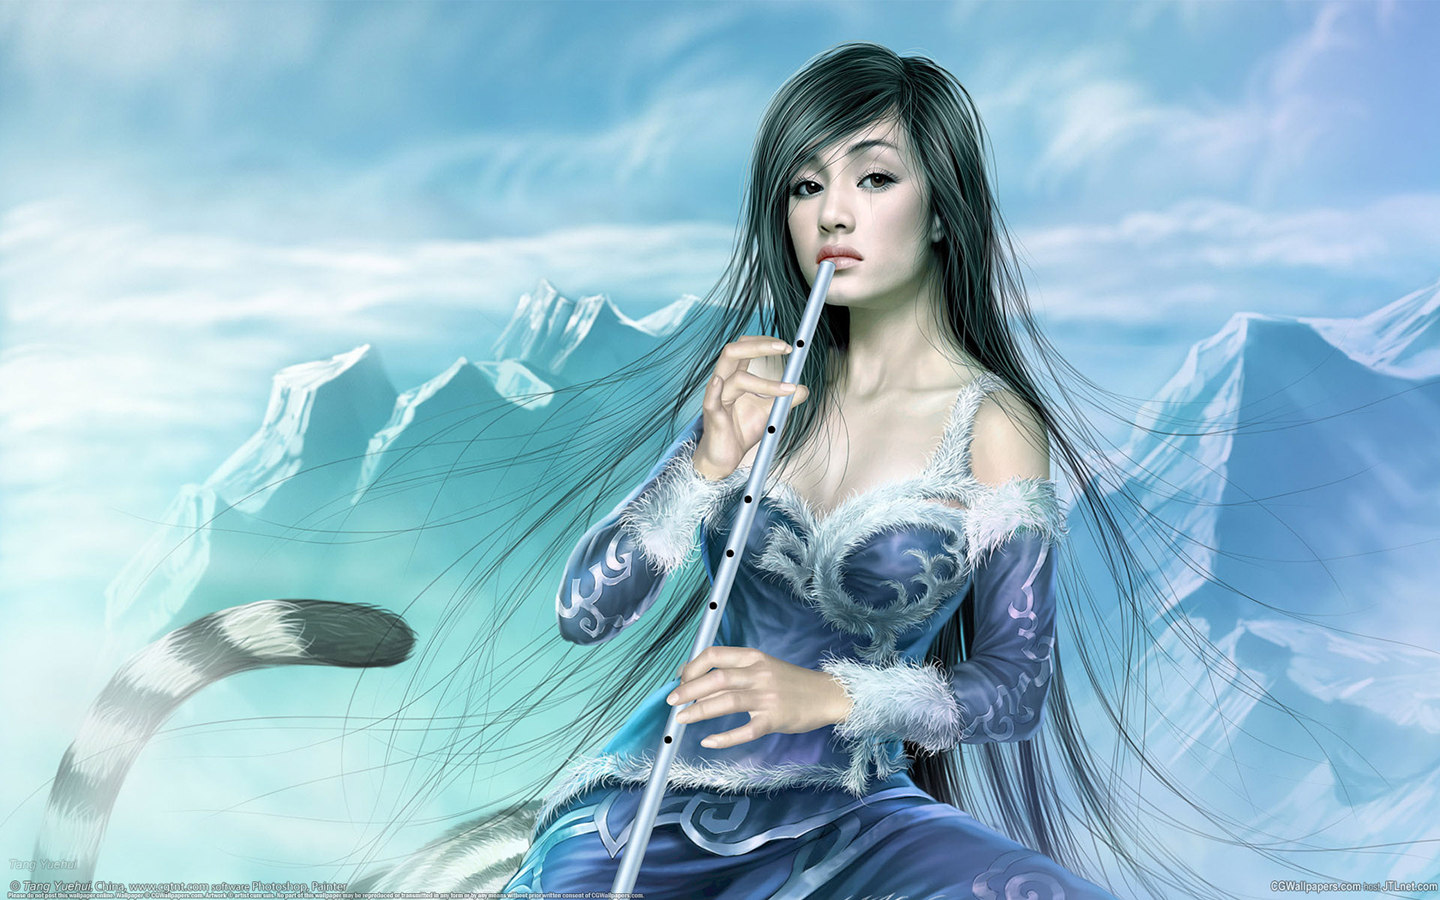 CG beautiful painting 24401